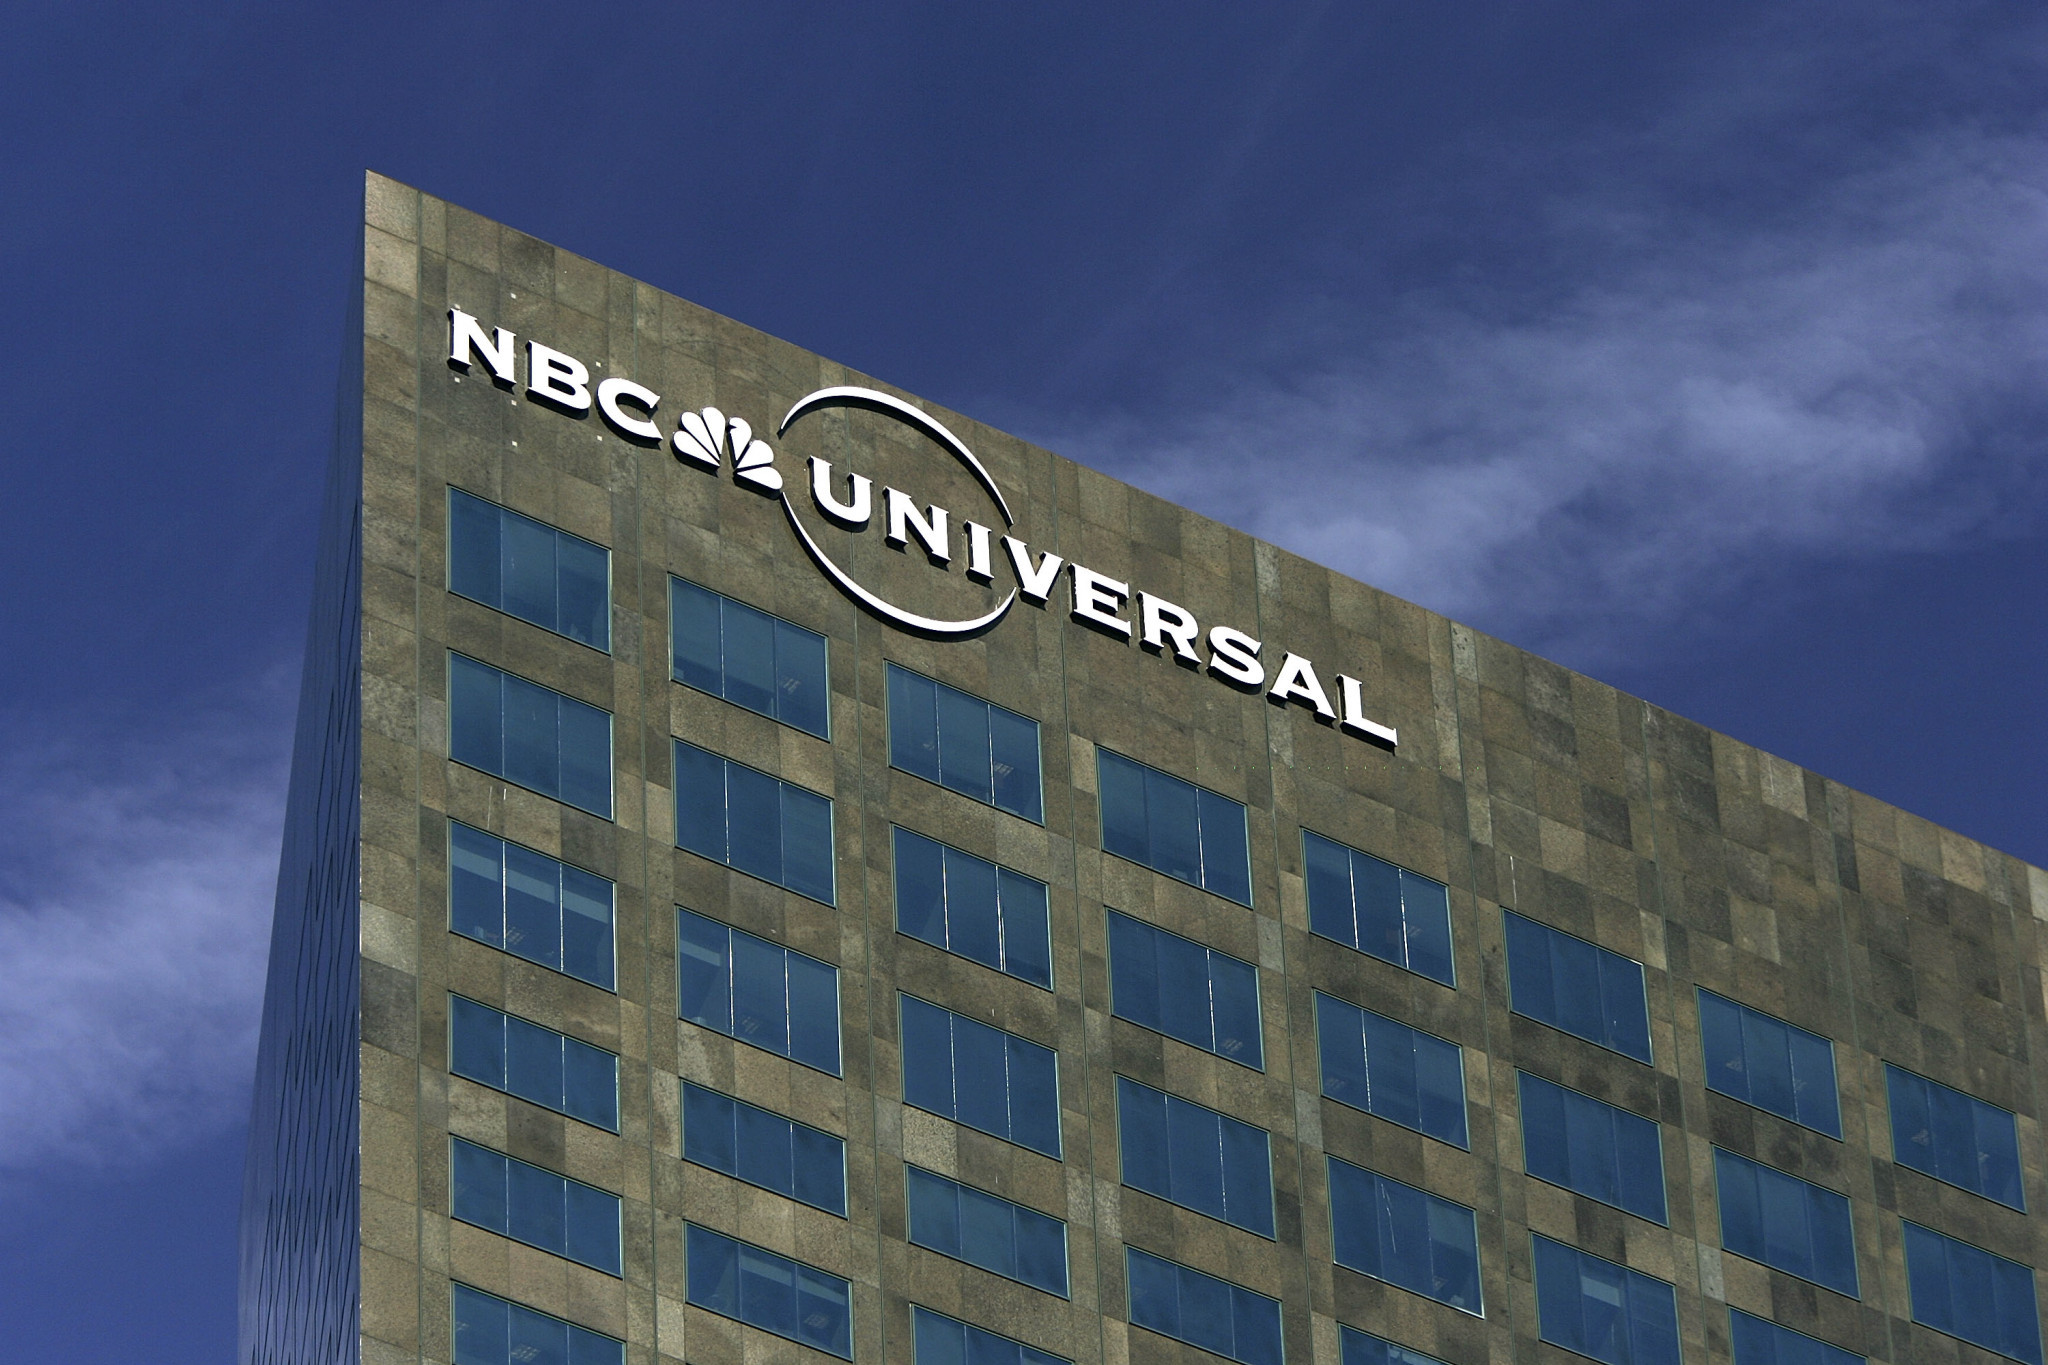 Olympic broadcaster NBCUniversal suffers advertising decline with sports programme disrupted